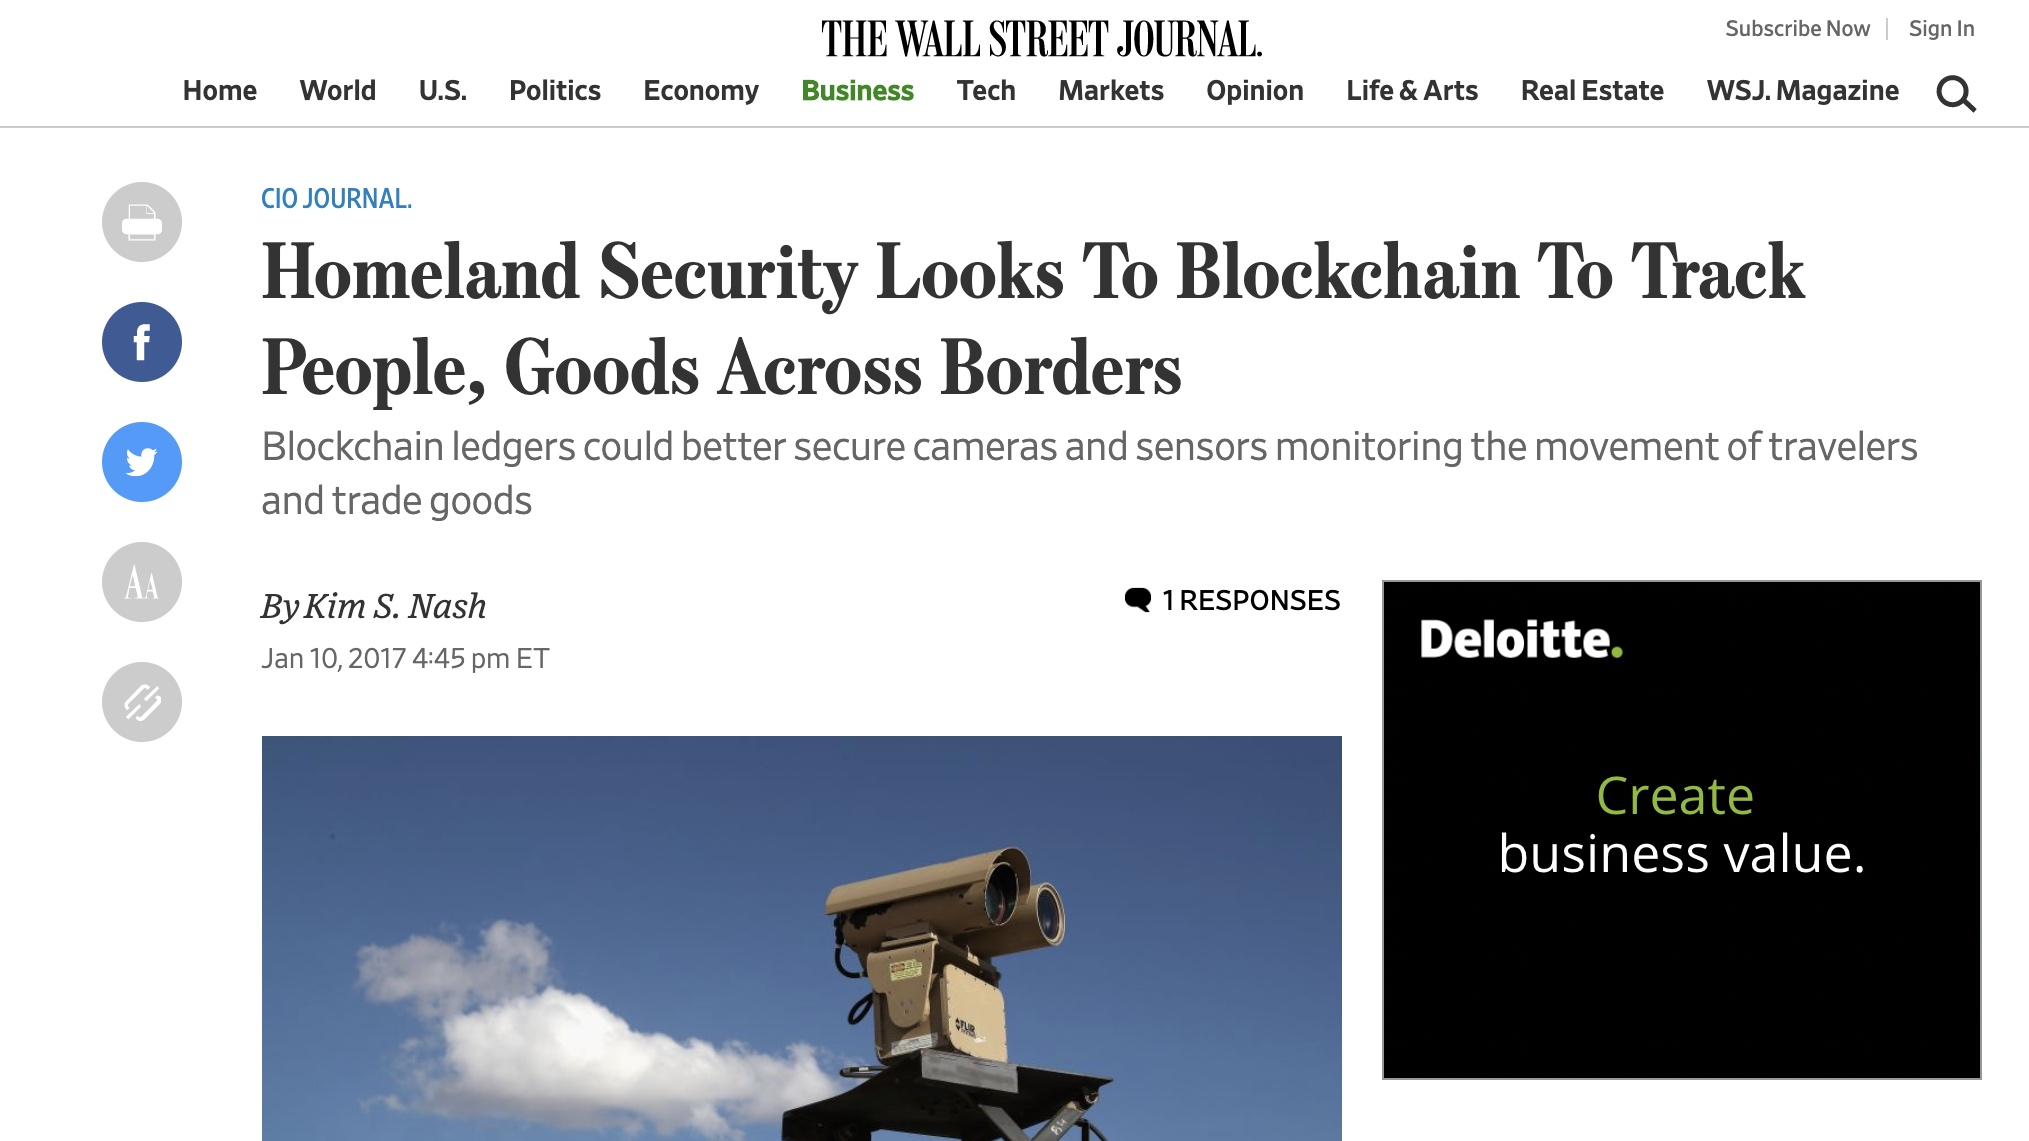 The Wall Street Journal - Homeland Security Looks To Blockchain To Track People, Goods Across Borders